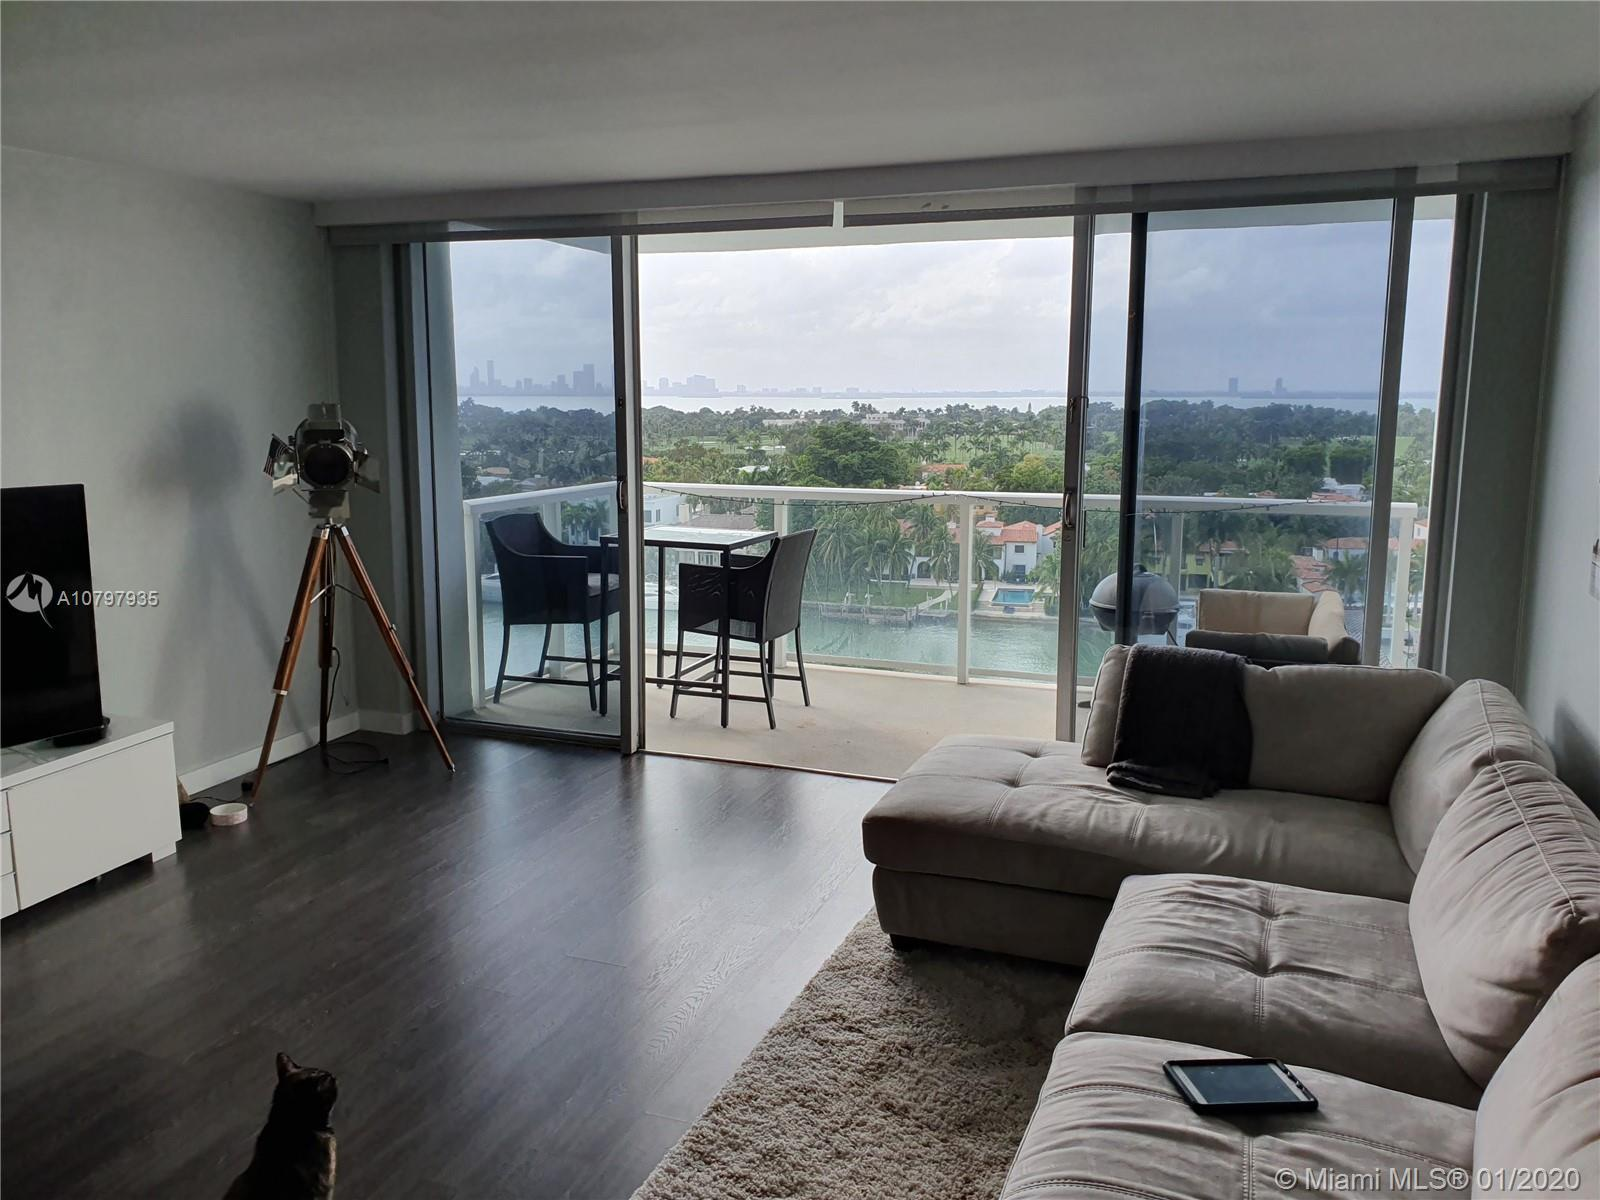 LARGE ONE BEDROOM, ONE 1/2 BATH WITH STUNNING VIEW OF THE CANAL, BAY AND DOWNTOWN. WONDERFUL SUNSET